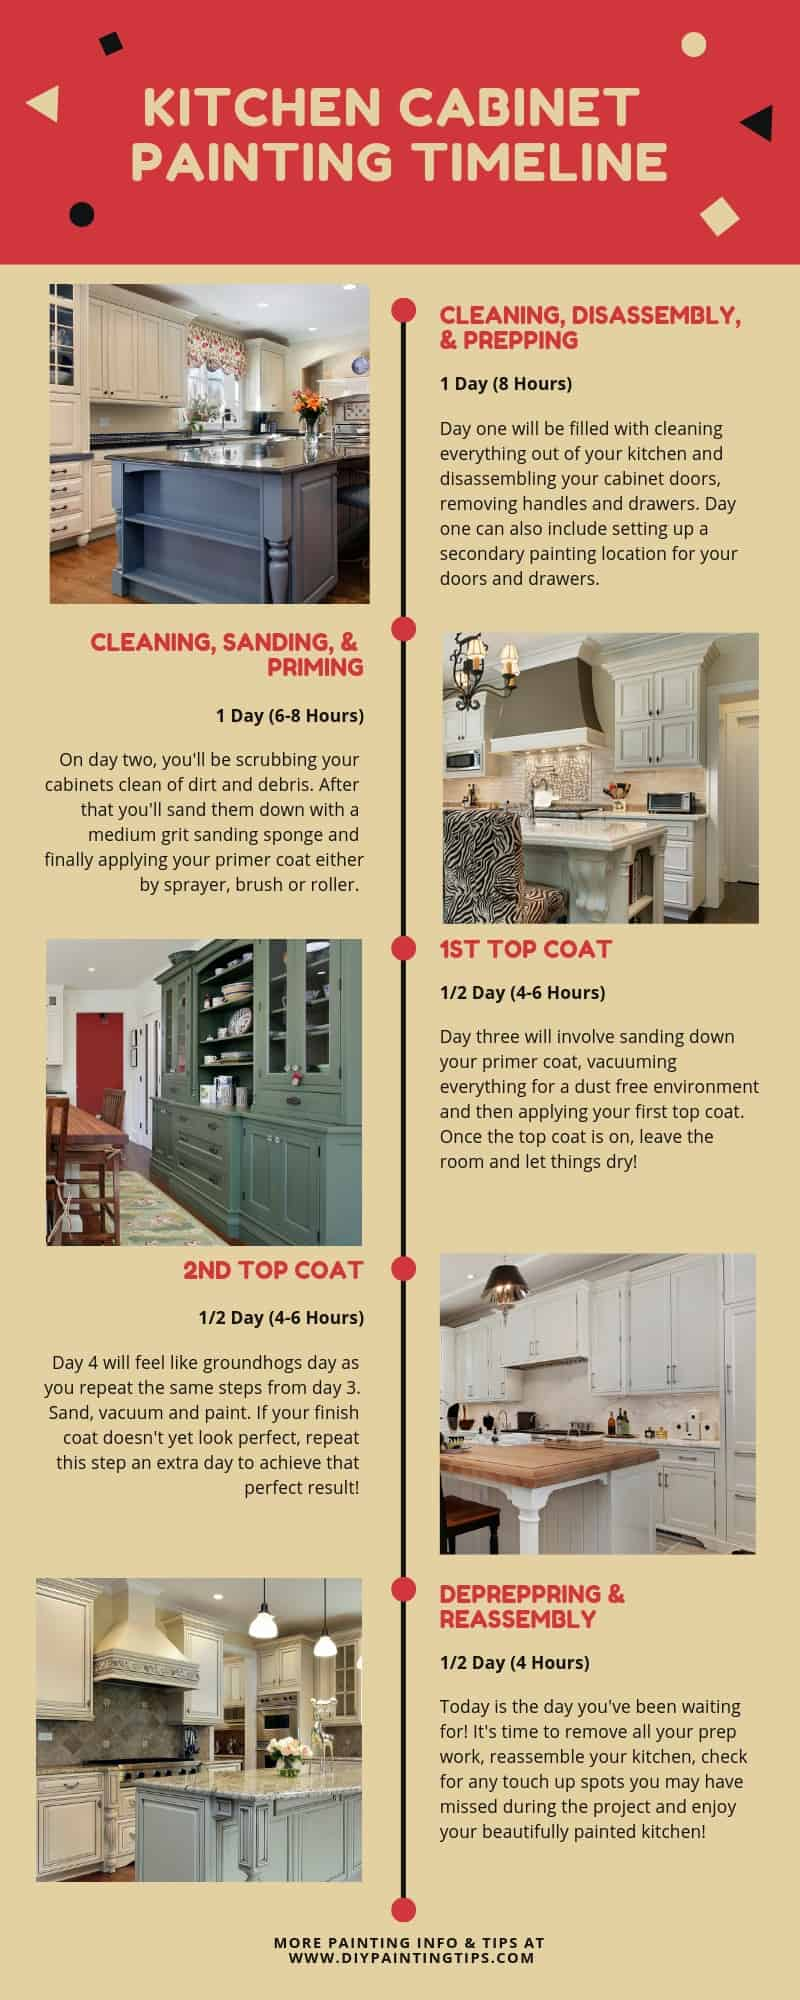 Kitchen Cabinet Painting Timeline - DIY Painting Tips